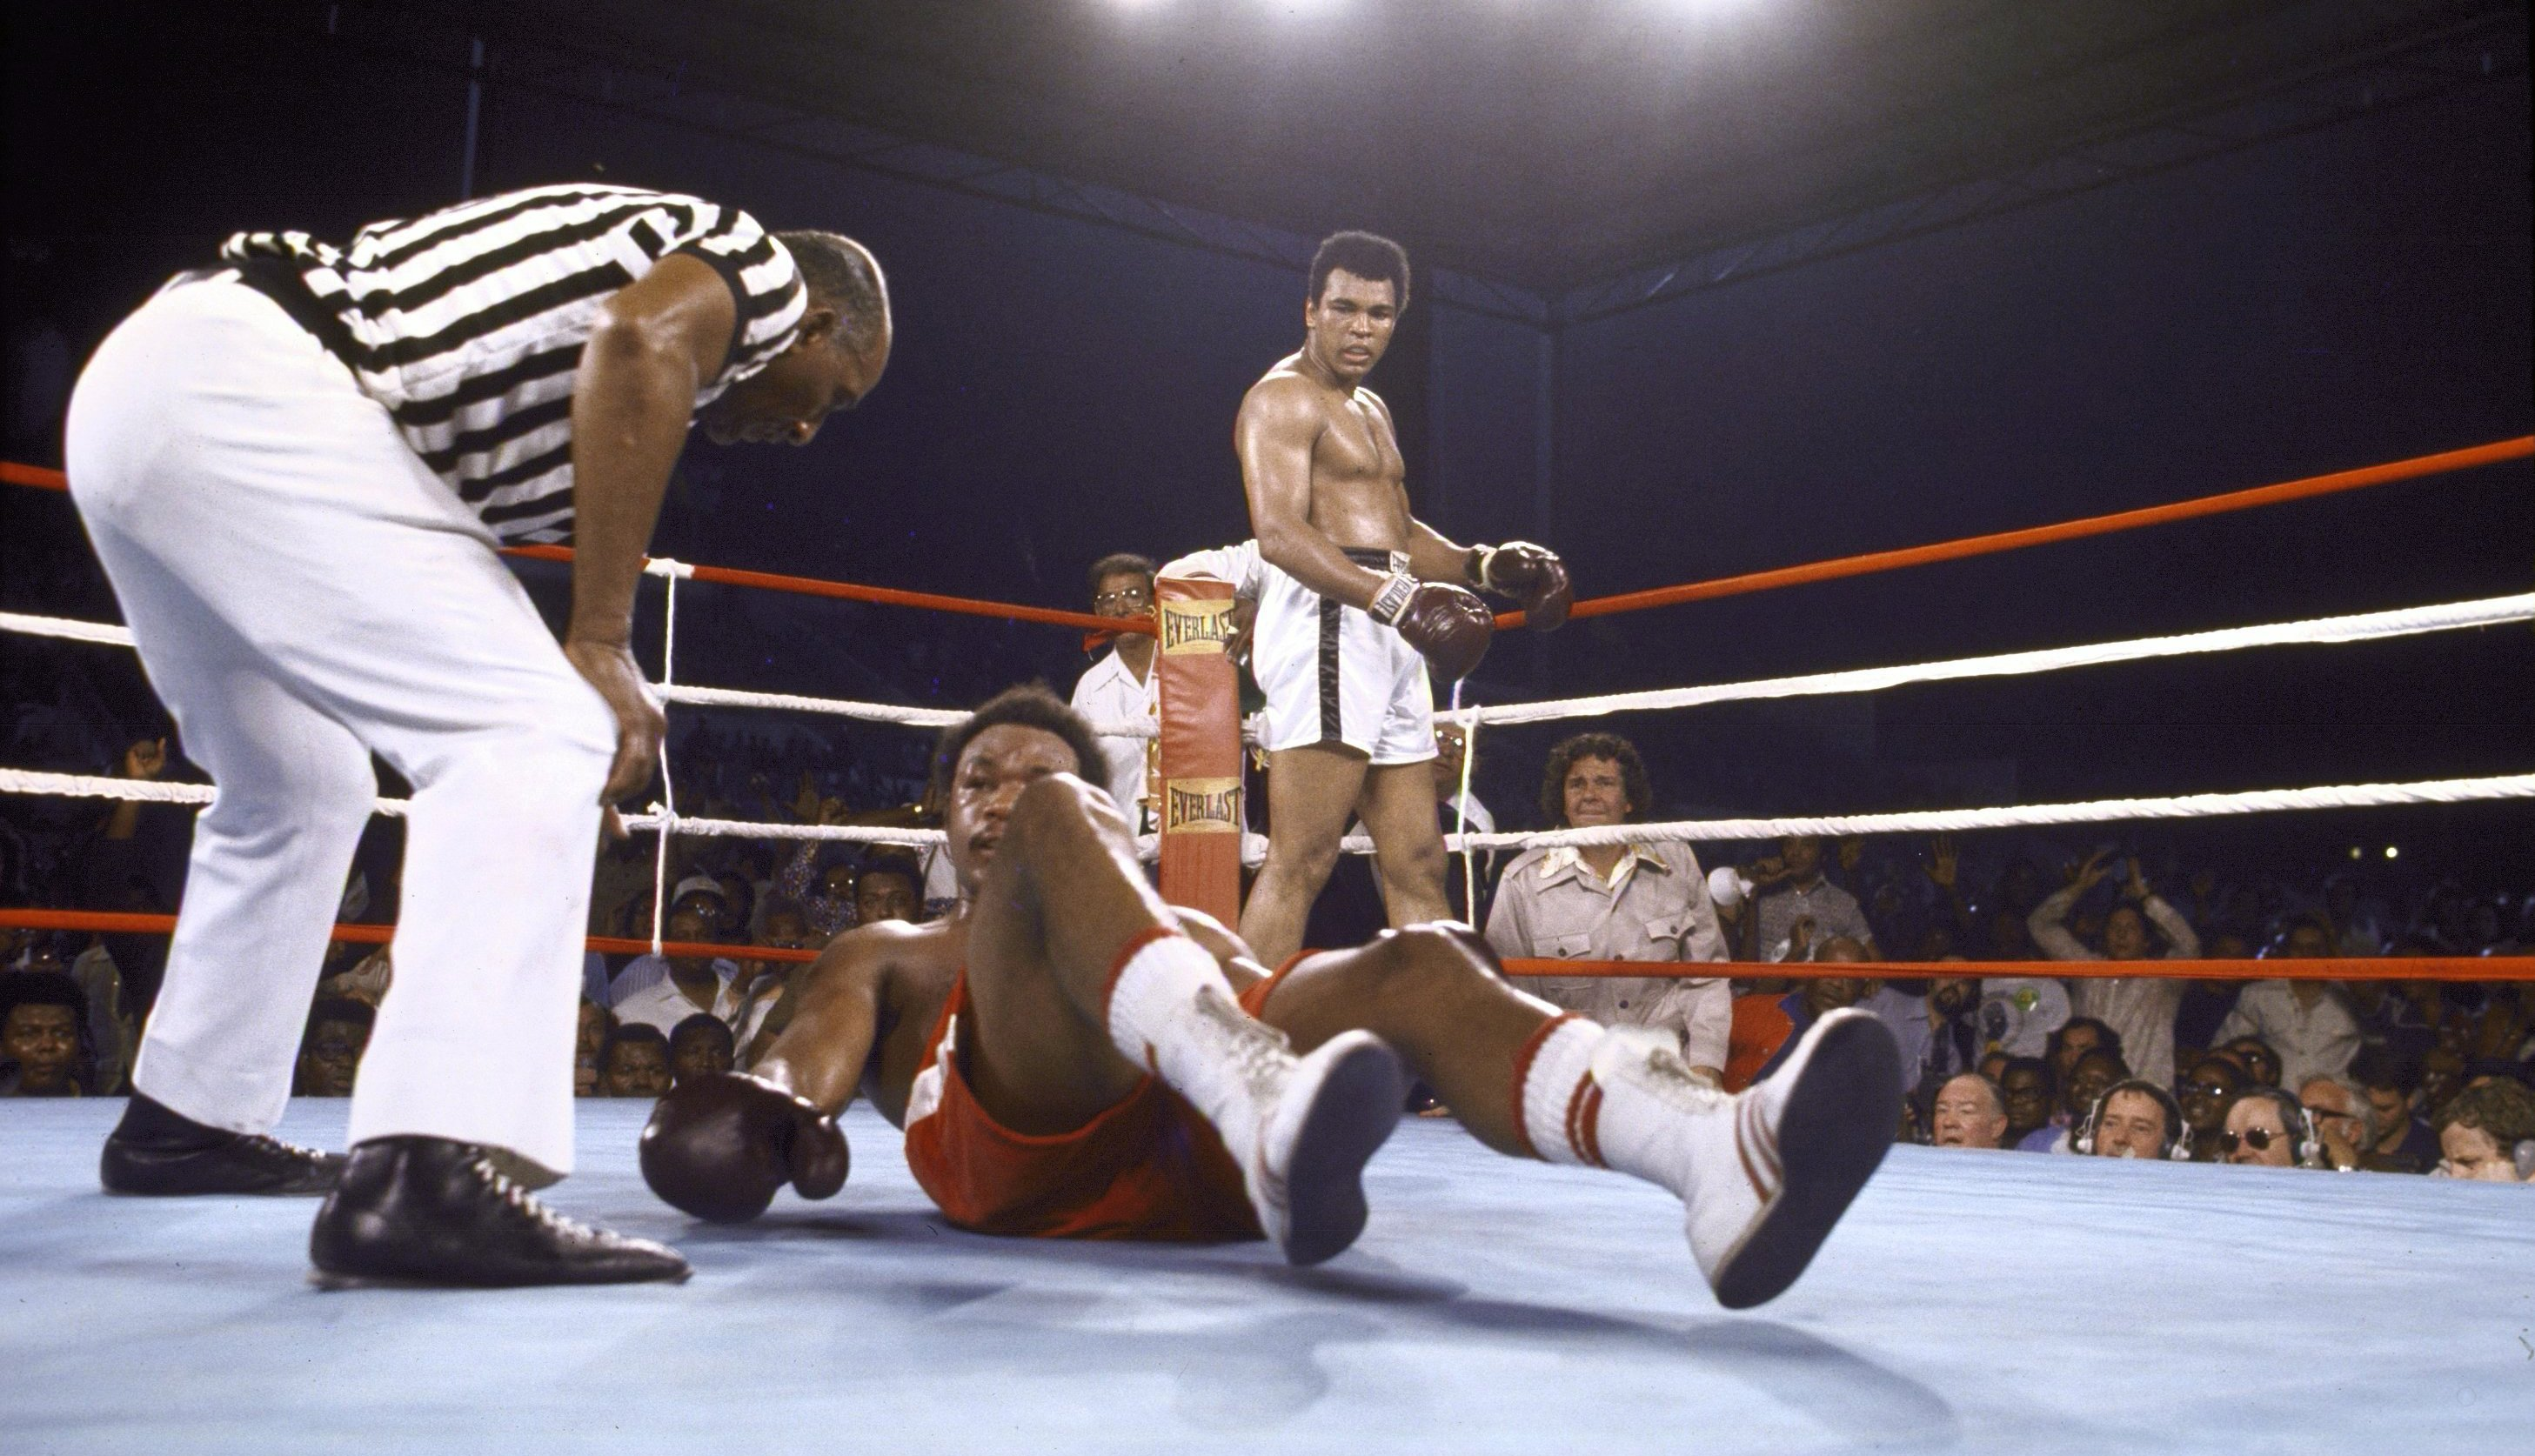 George Foreman tries to get off the canvas as referee Zack Clayton checks on him during the match against Muhammad Ali at 20th of May Stadium. Kinshasa, Zaire 10/30/1974